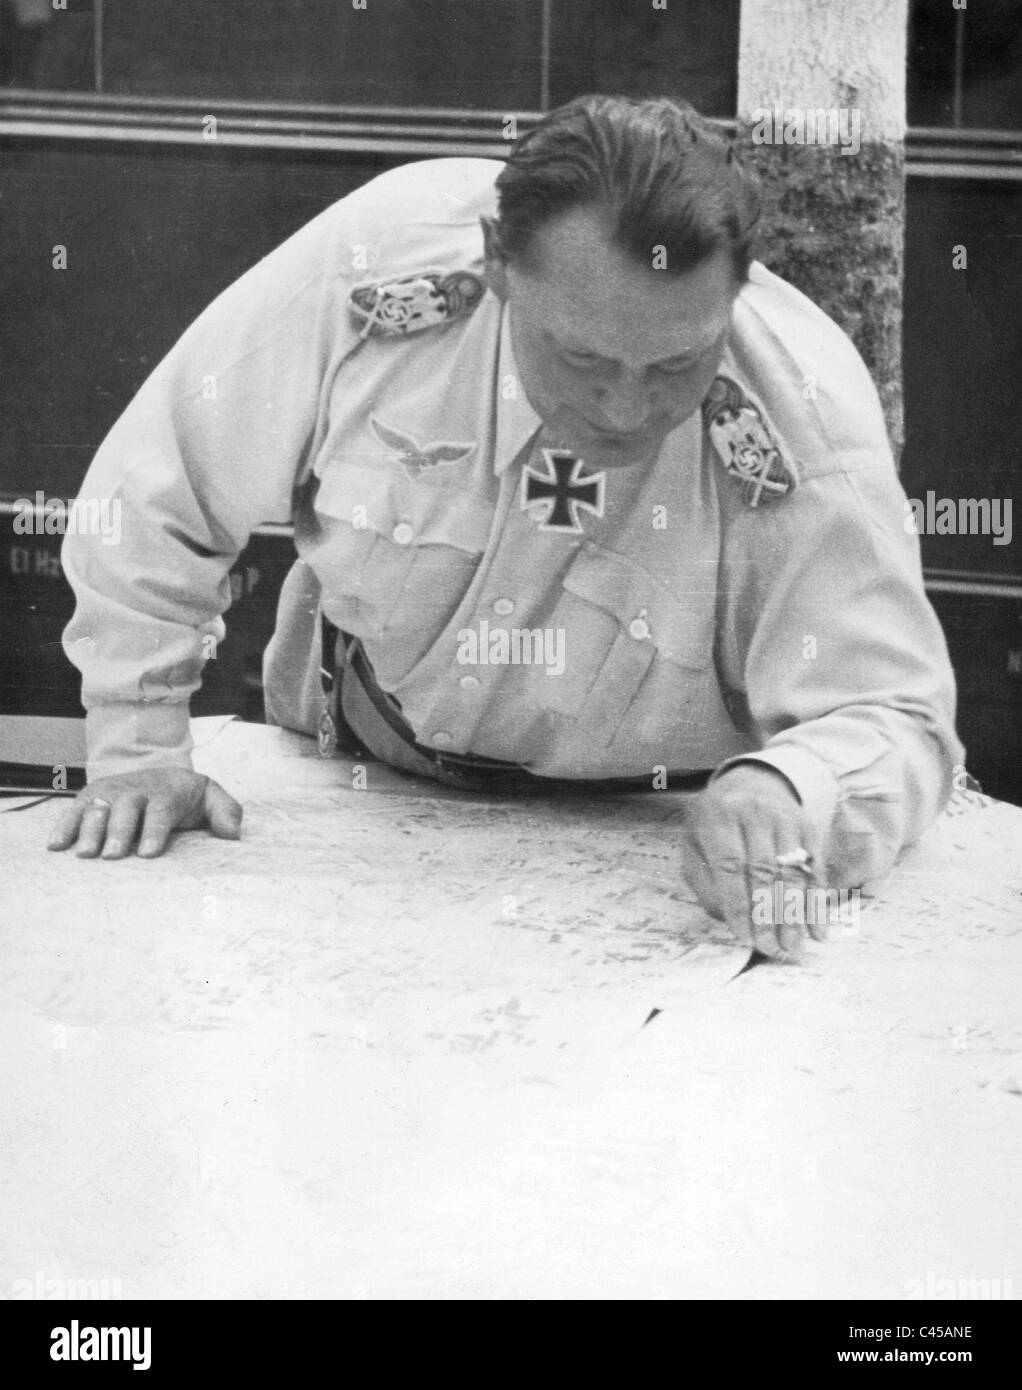 Hermann Goering, 1940 - Stock Image